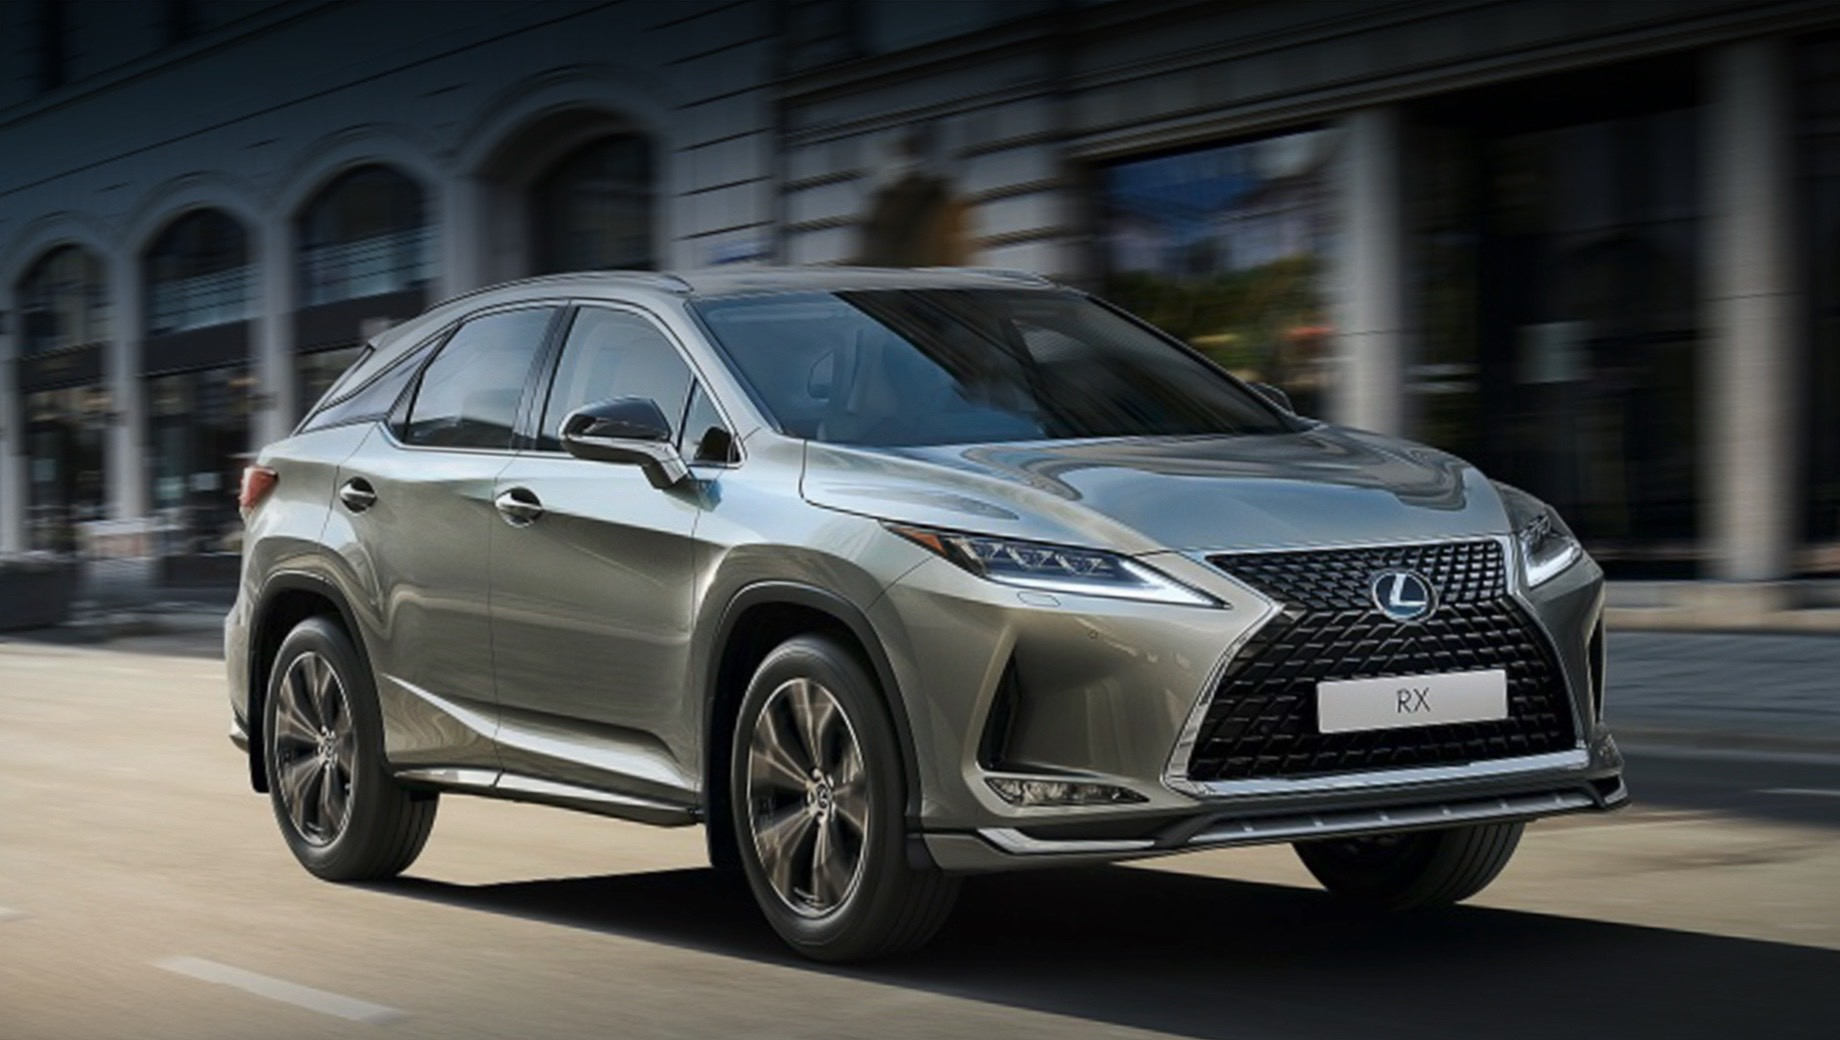 Lexus has unveiled yet another Black Vision model: the RX SUV meant exclusively for Russia. Let's see what it is about.